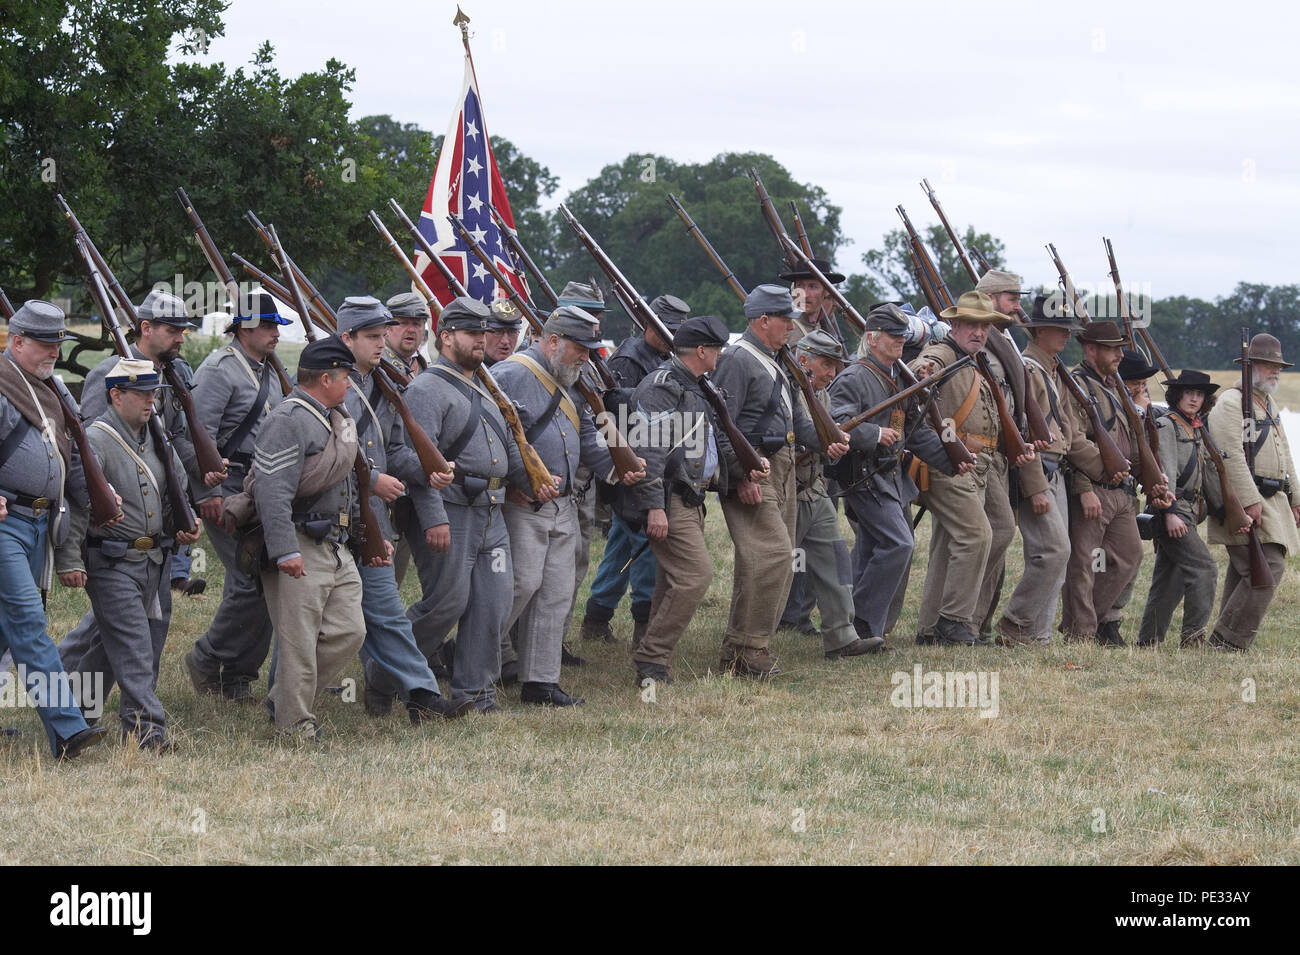 The Confederate army on the battlefield for the reenactment